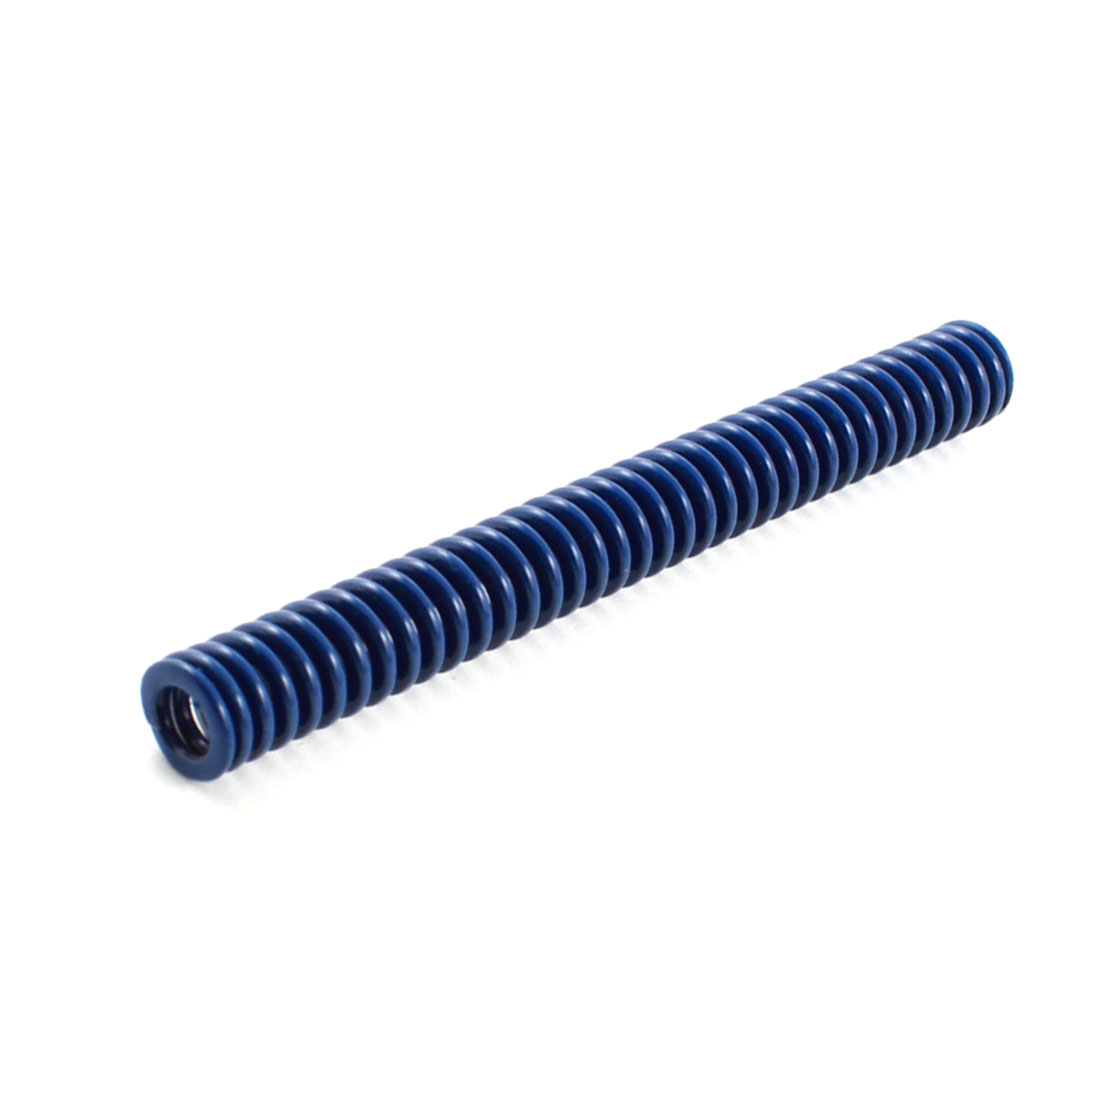 Plastic Injection Mold Die Light Duty Spiral Stamping Compression Spring Blue 8mm x 75mm